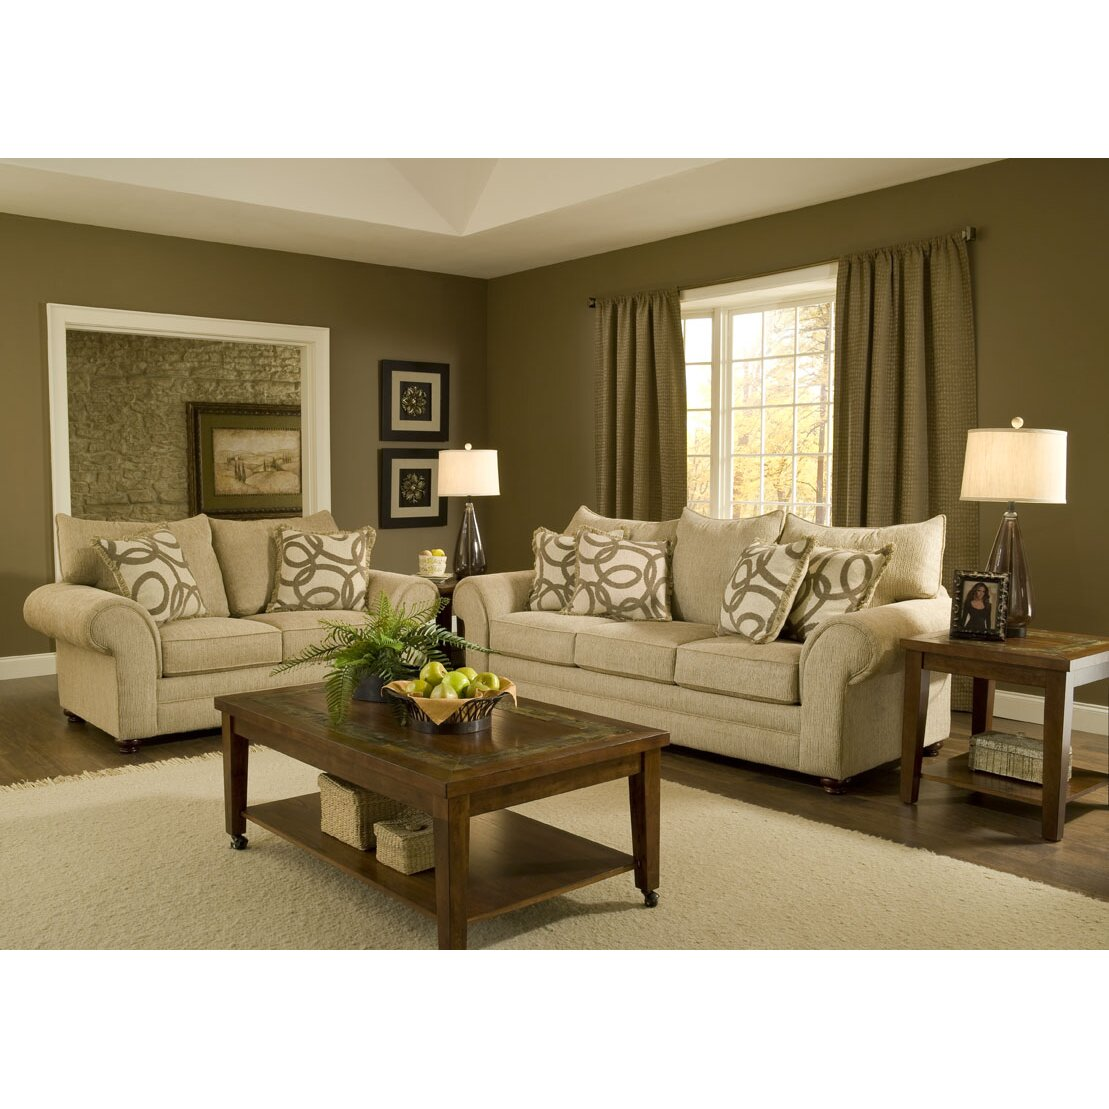 Living Room Collection Furniture Chelsea Home Astrid Living Room Collection Reviews Wayfair